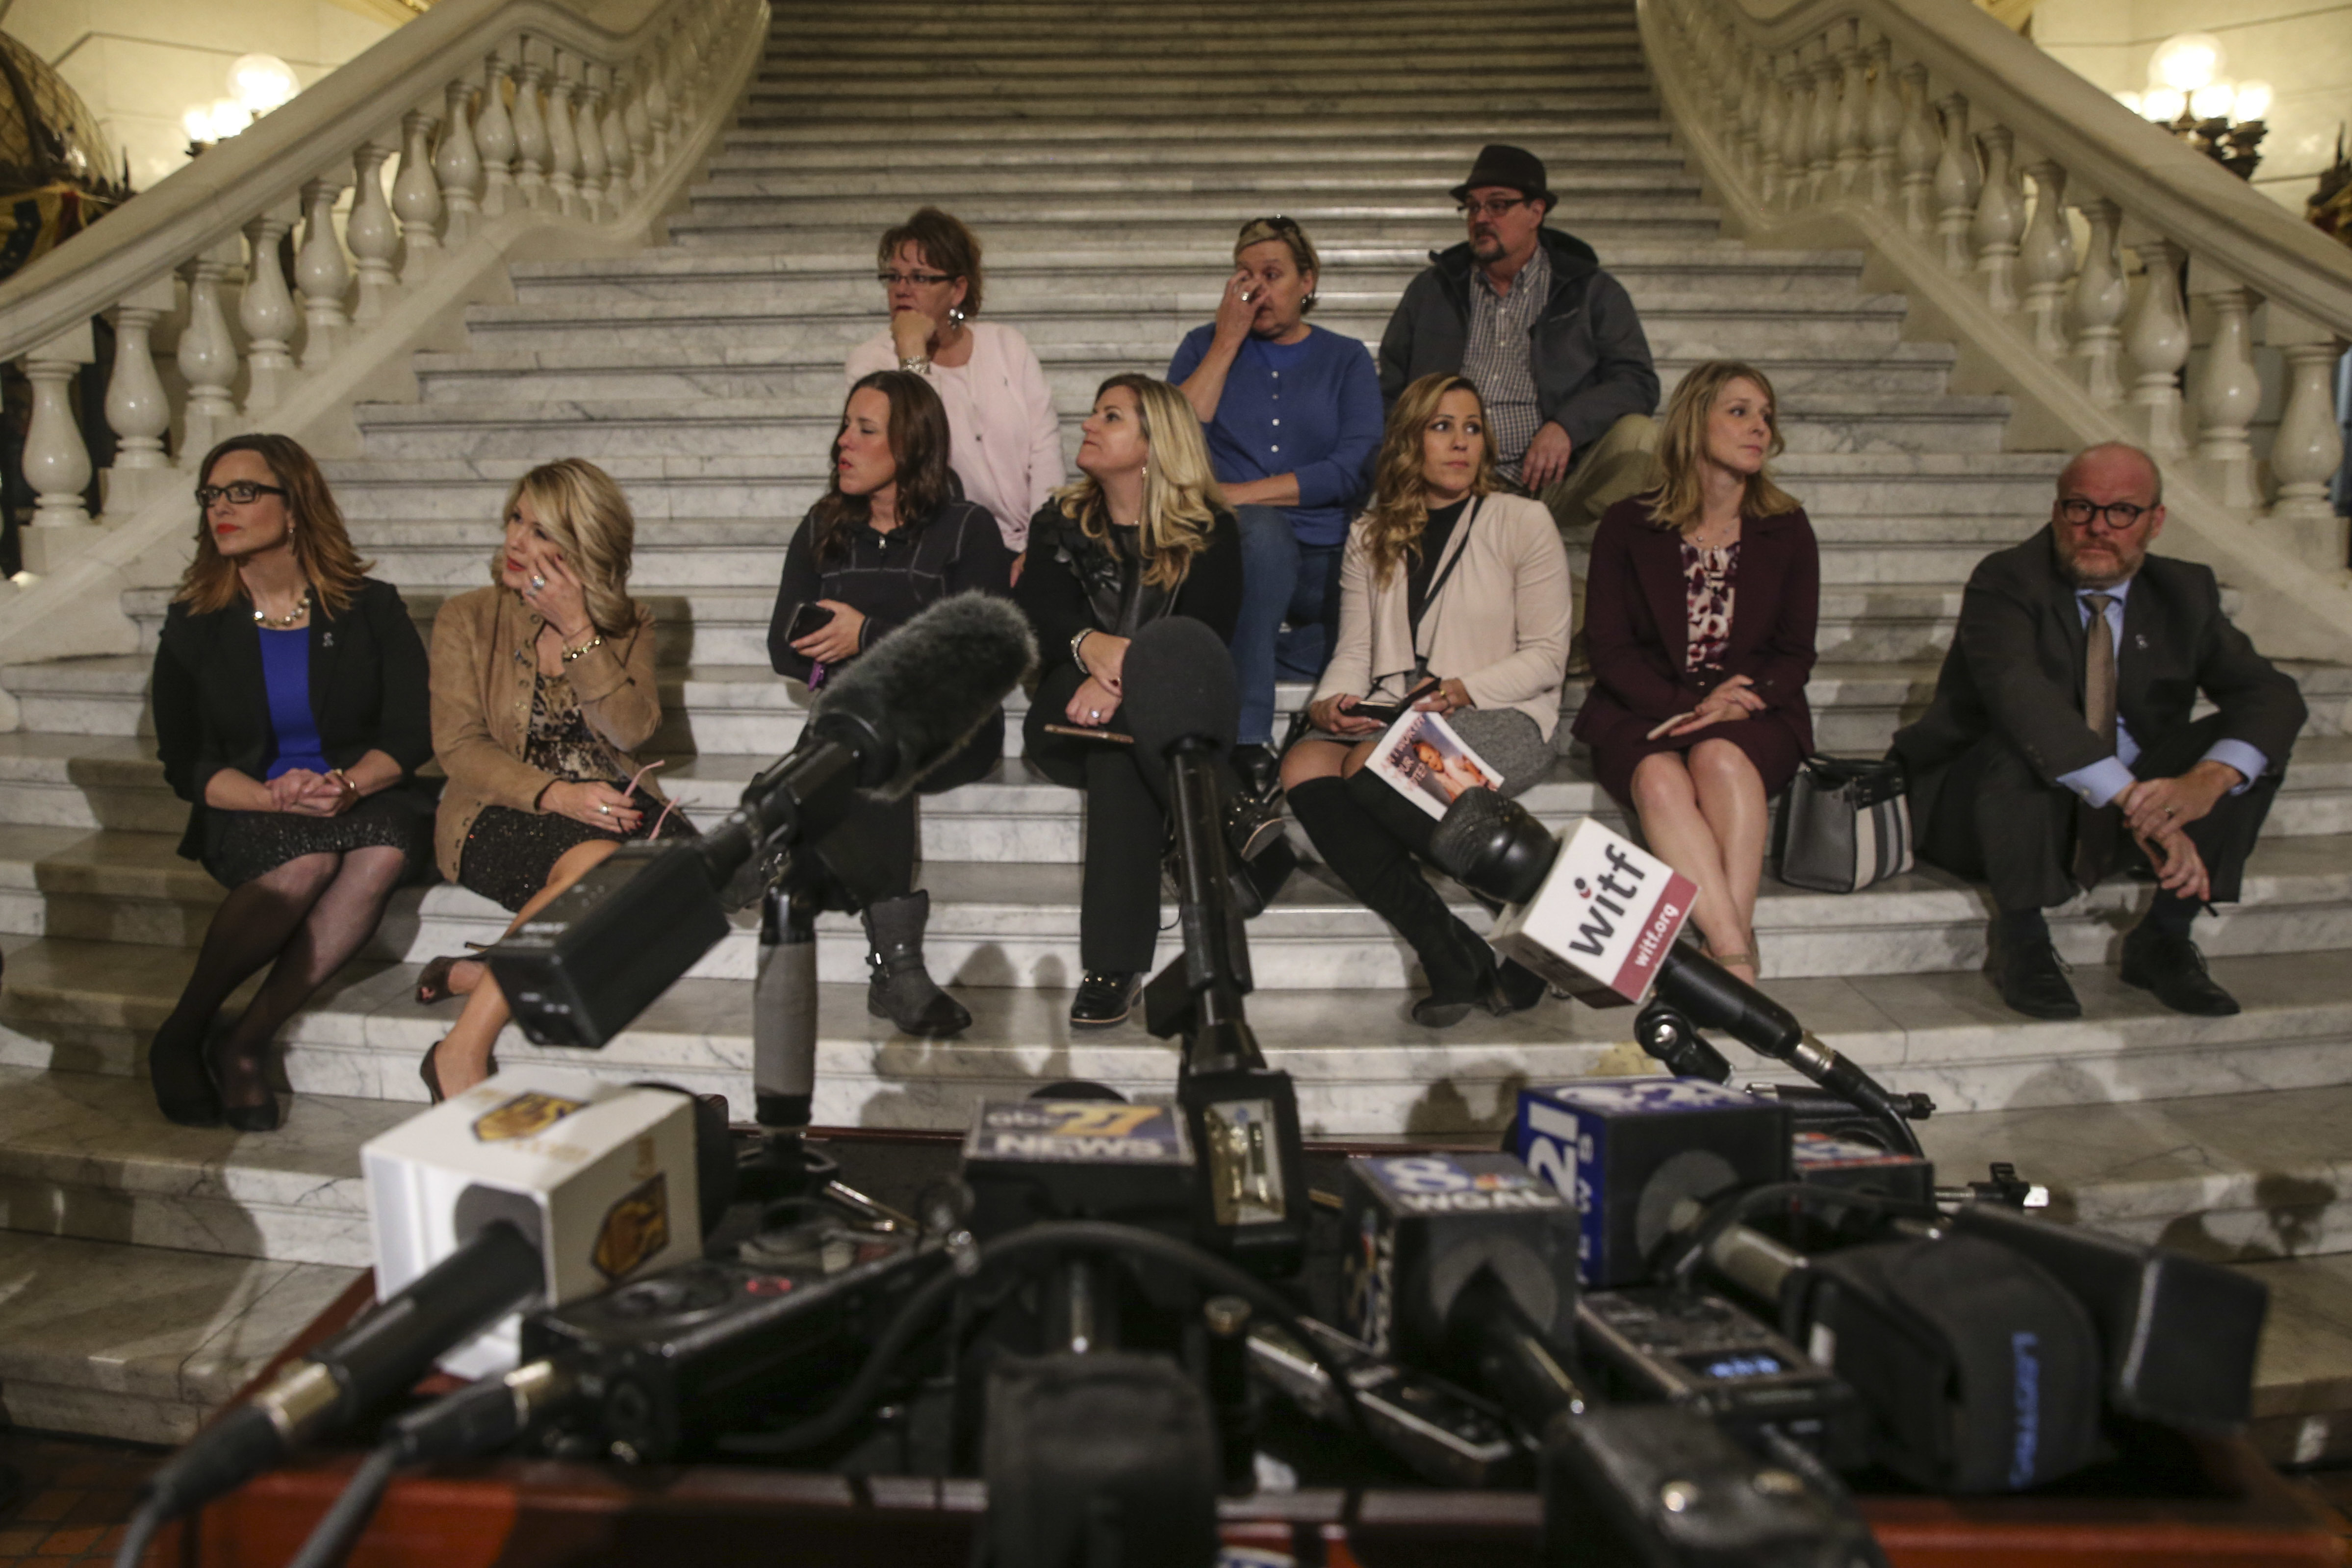 After a clergy abuse bill collapsed in the Pennsylvania Senate late Wednesday night, victims gathered in the Capitol rotunda awaiting the arrival of Pennsylvania Attorney General Josh Shapiro.